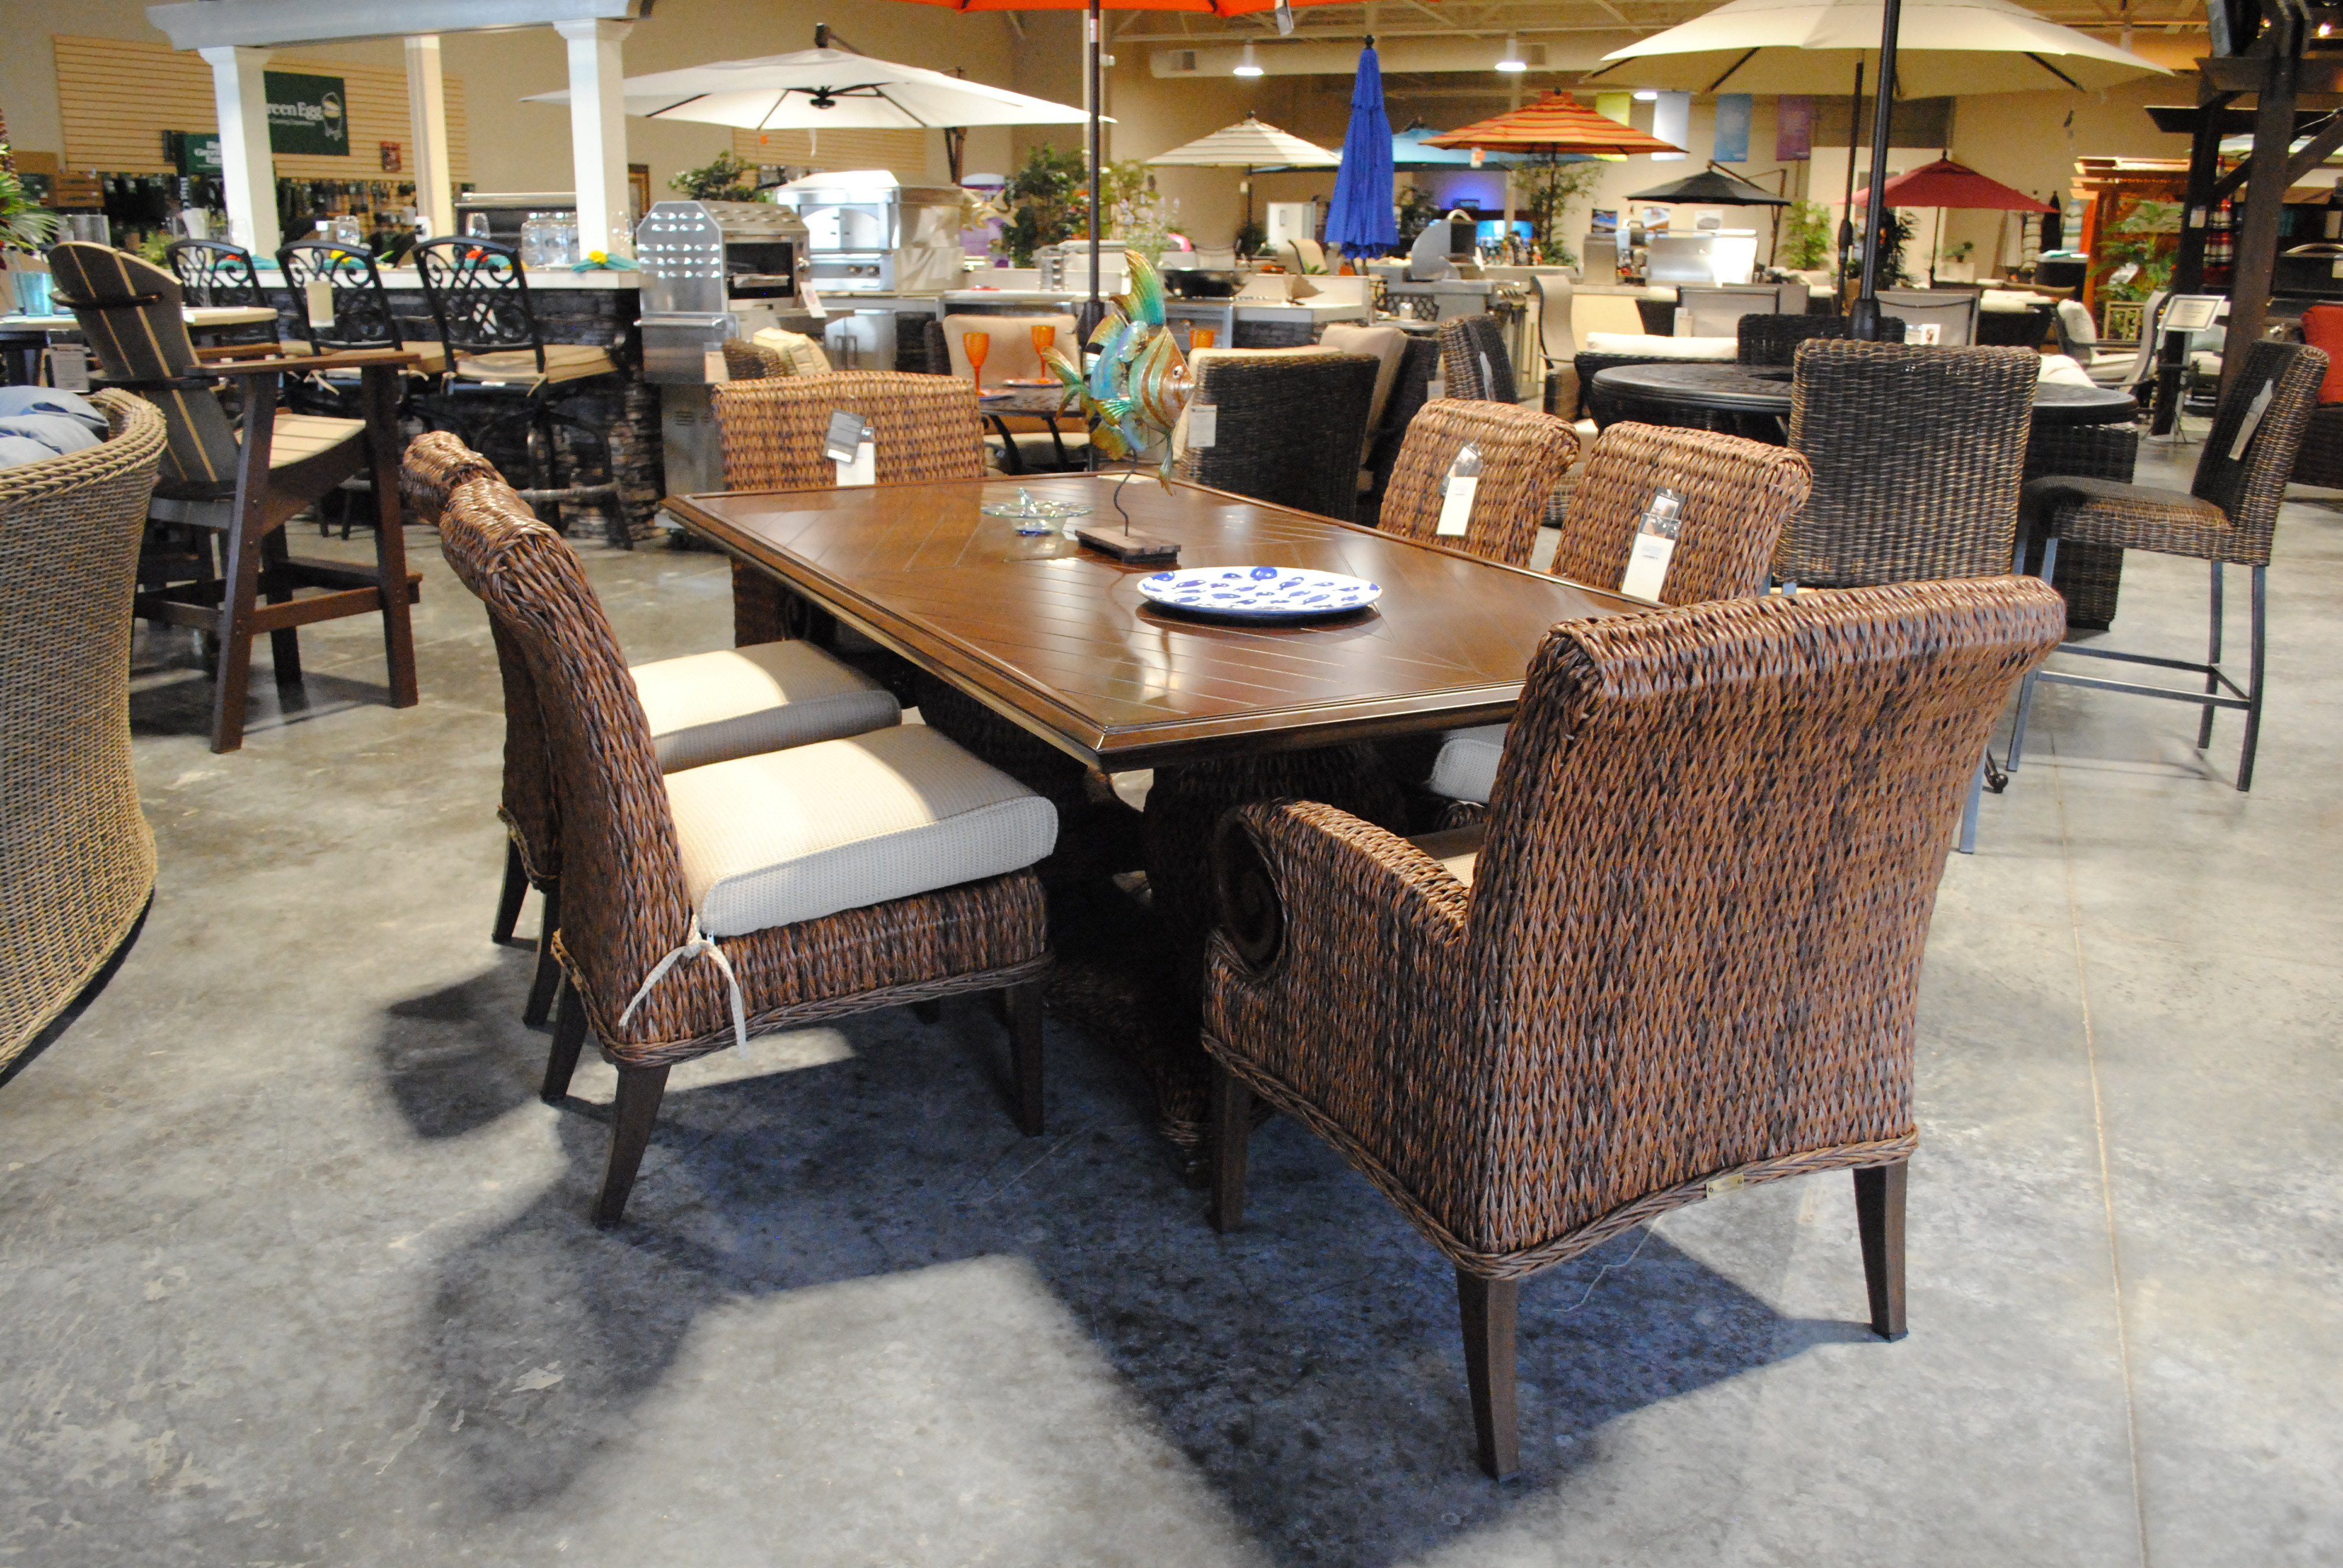 2017 decor arriving now - brentwood outdoor living